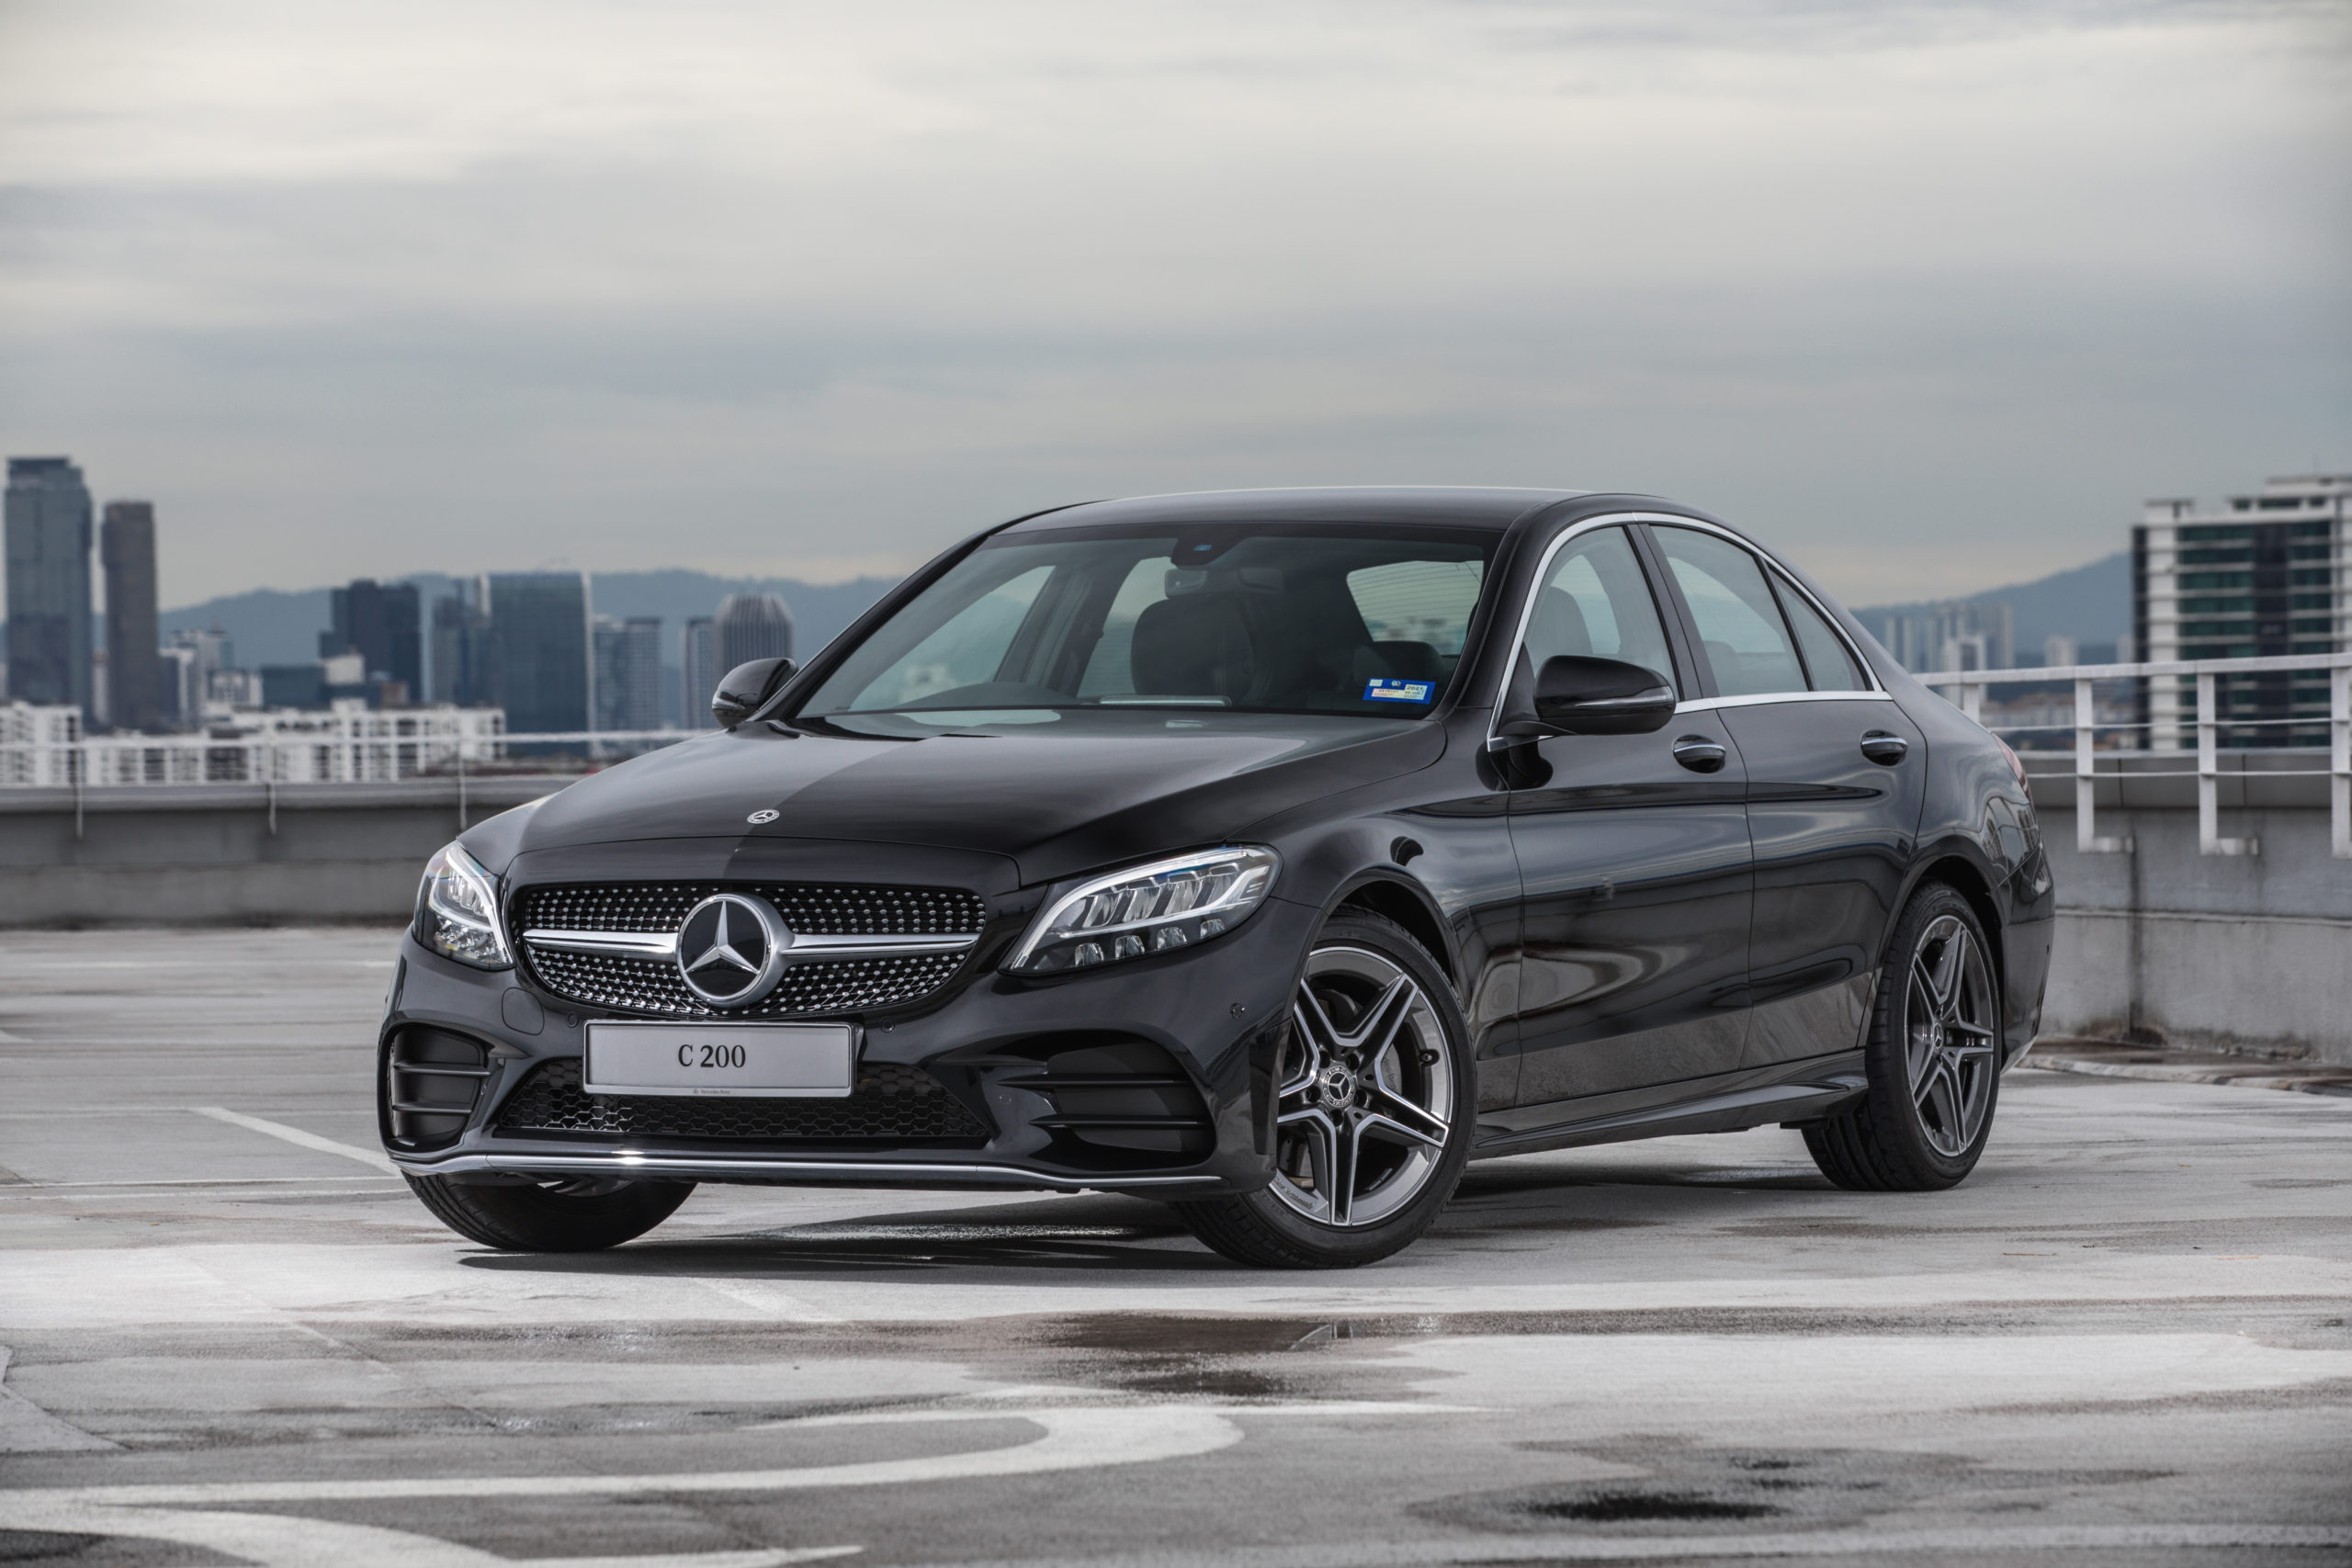 2020 Mercedes Benz C200 AMG Line: 6 Highlights on the sportiest entry level C-Class